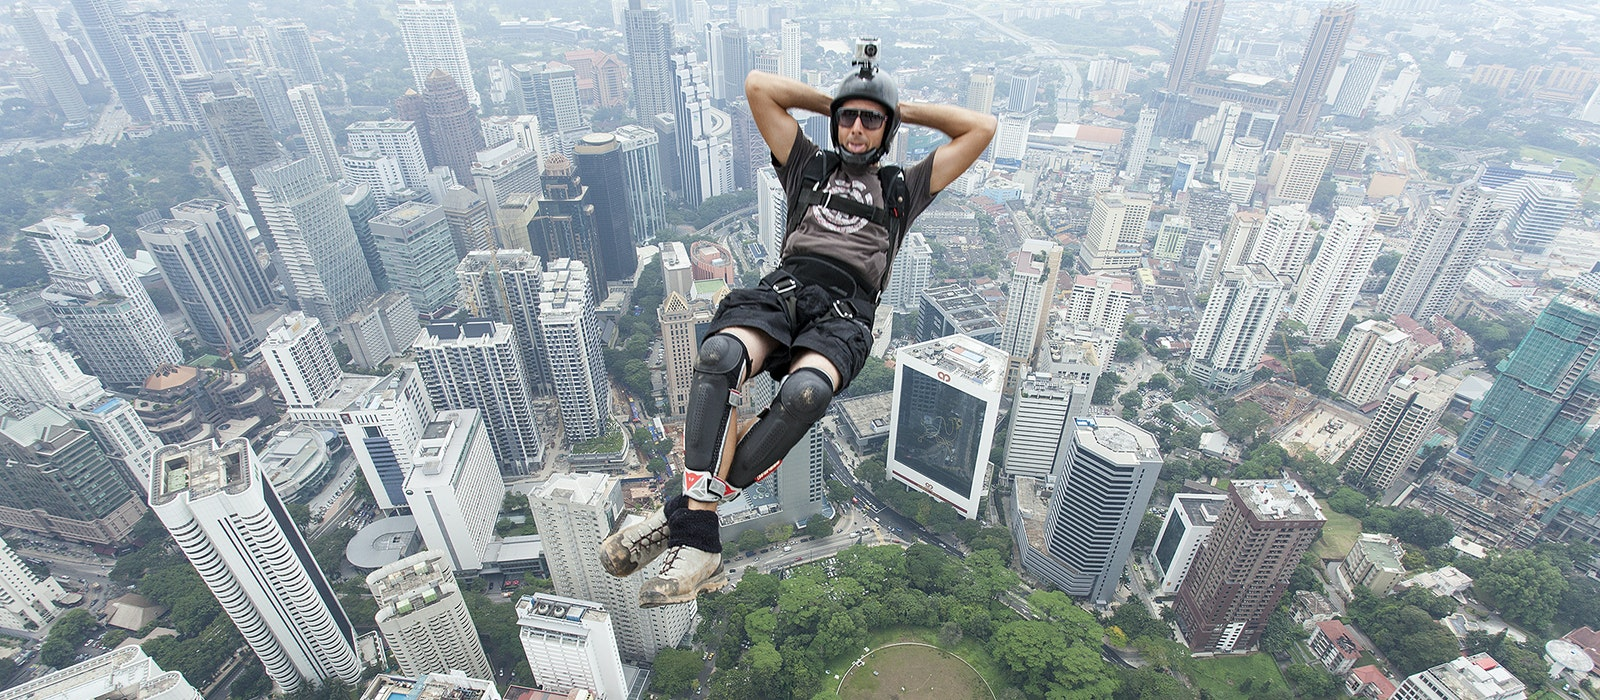 A BASE jumper exitsKuala Lumpur's 1,099-foot KL Tower during an annual event that attracts dozens of daredevils.